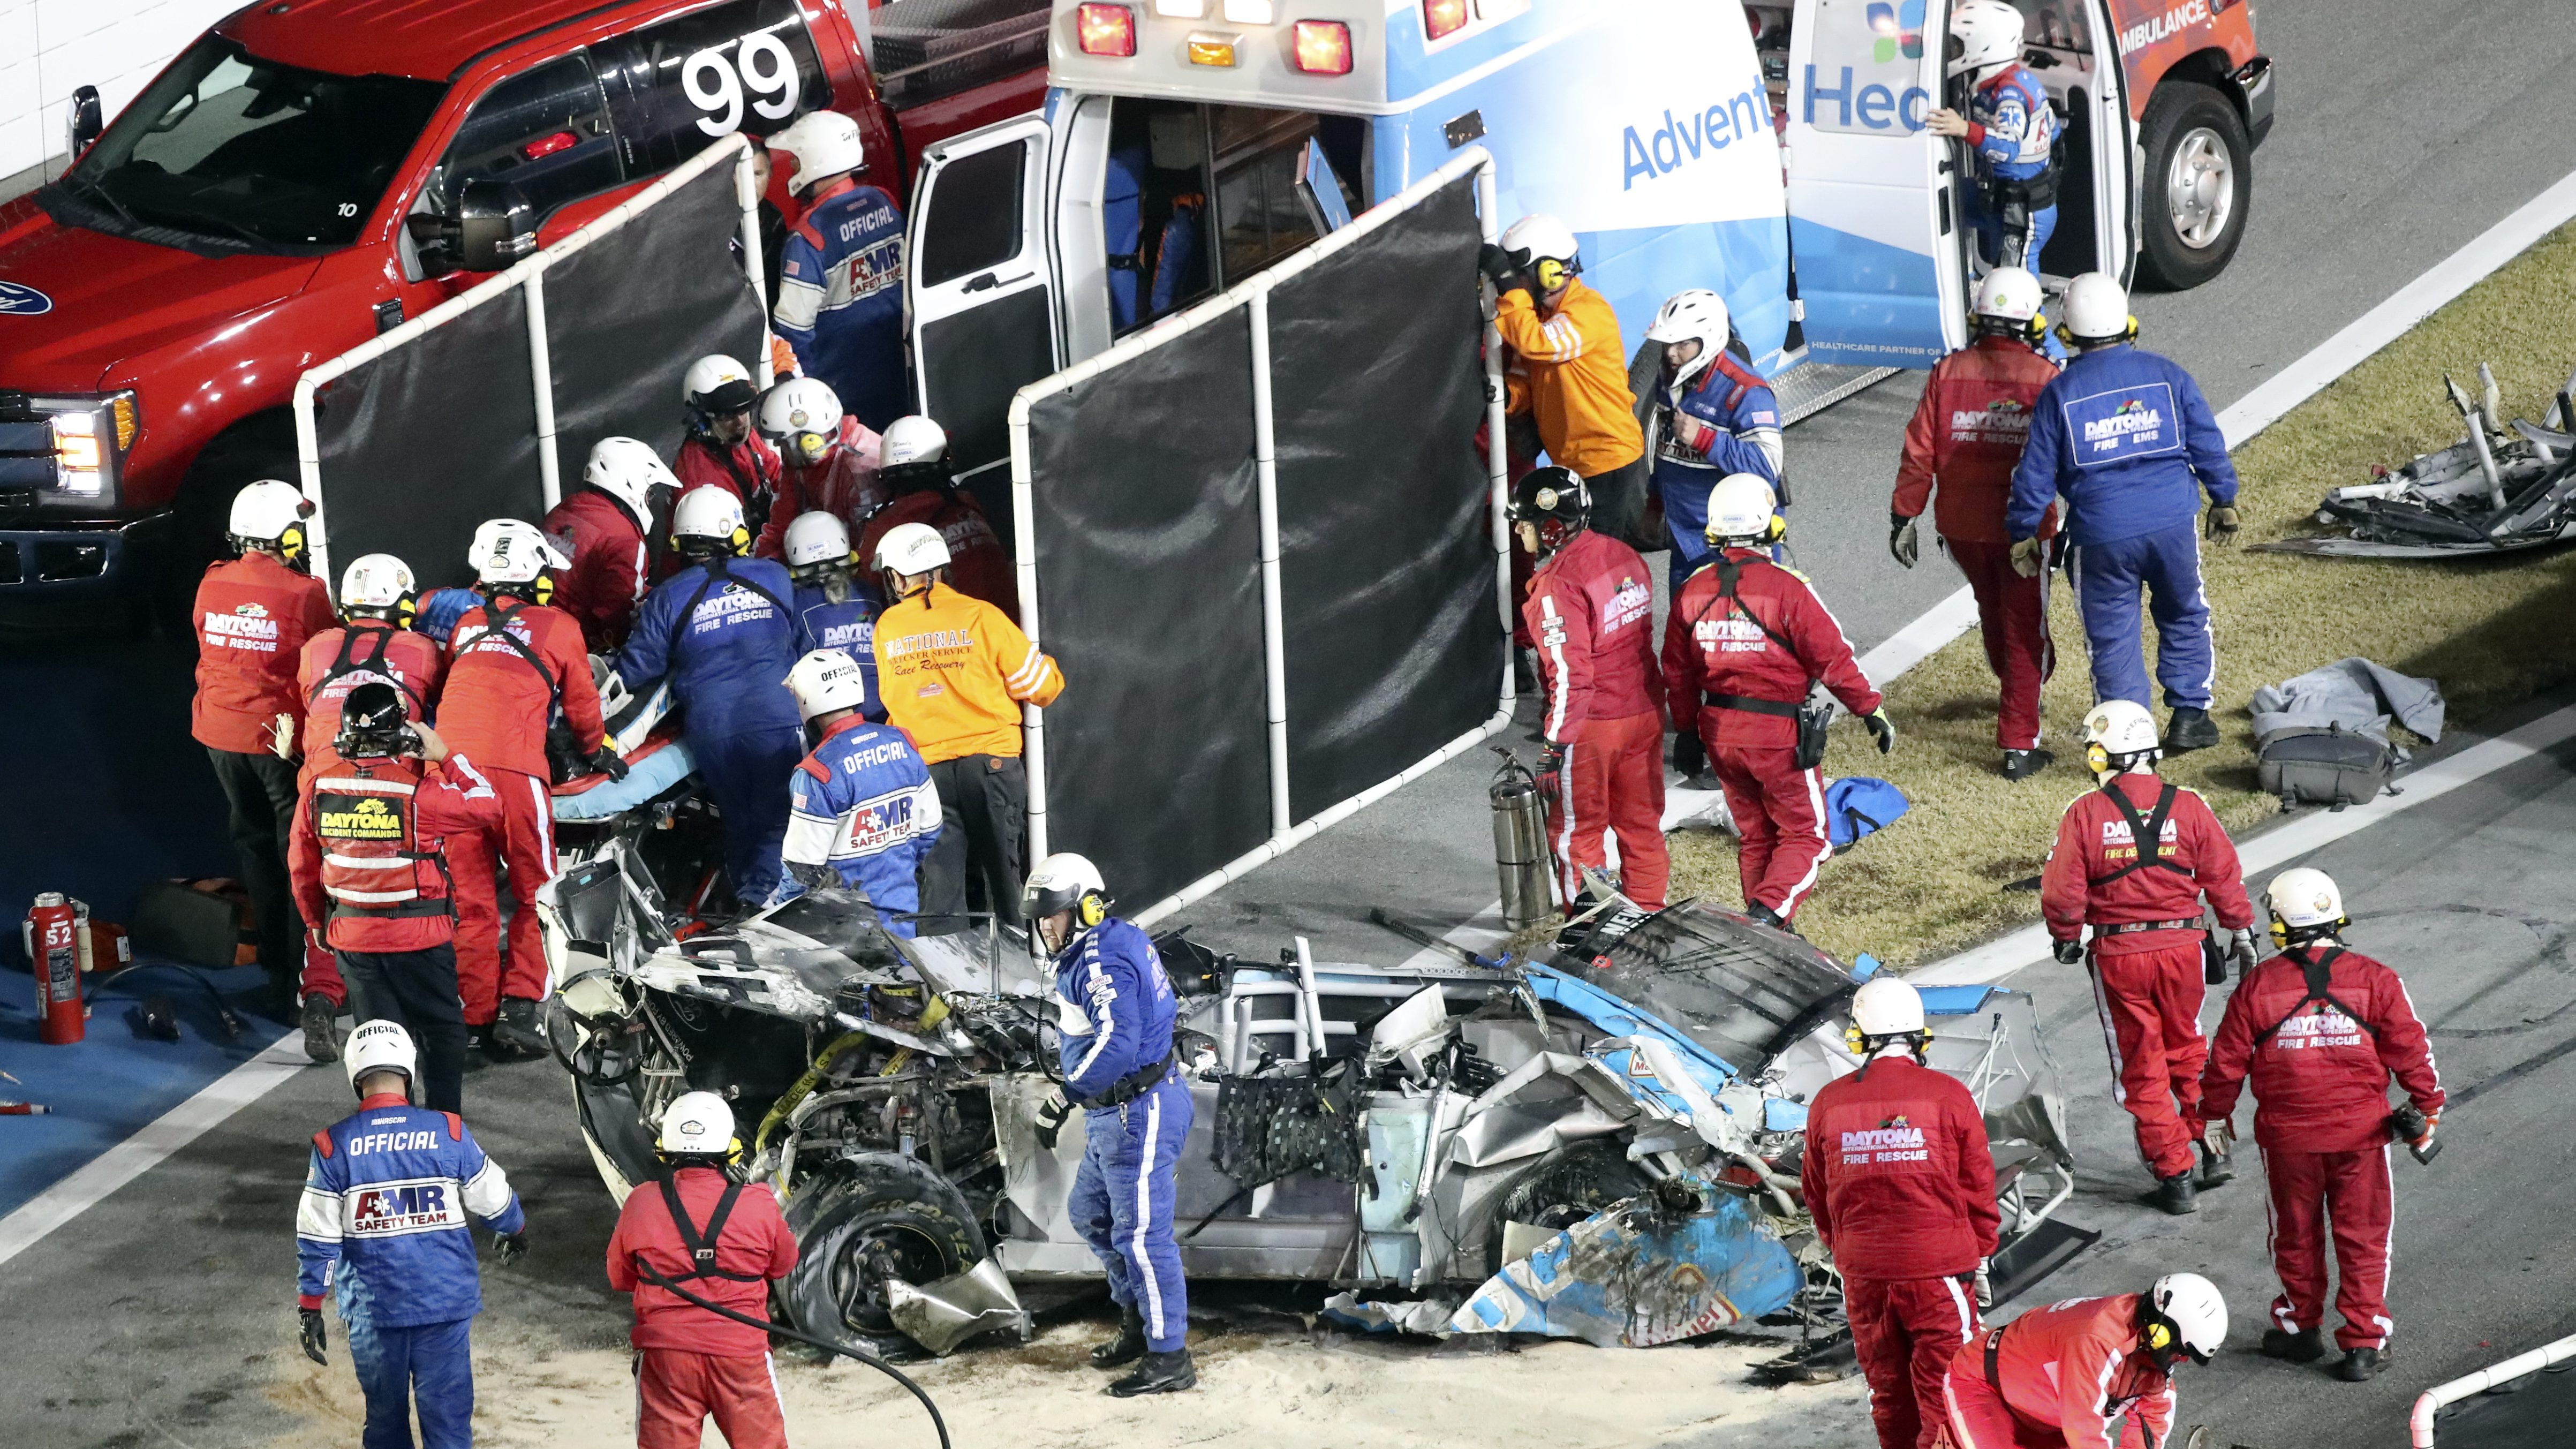 NASCAR: Kyle Petty 'very emotional' after Newman's crash - NBC Sports